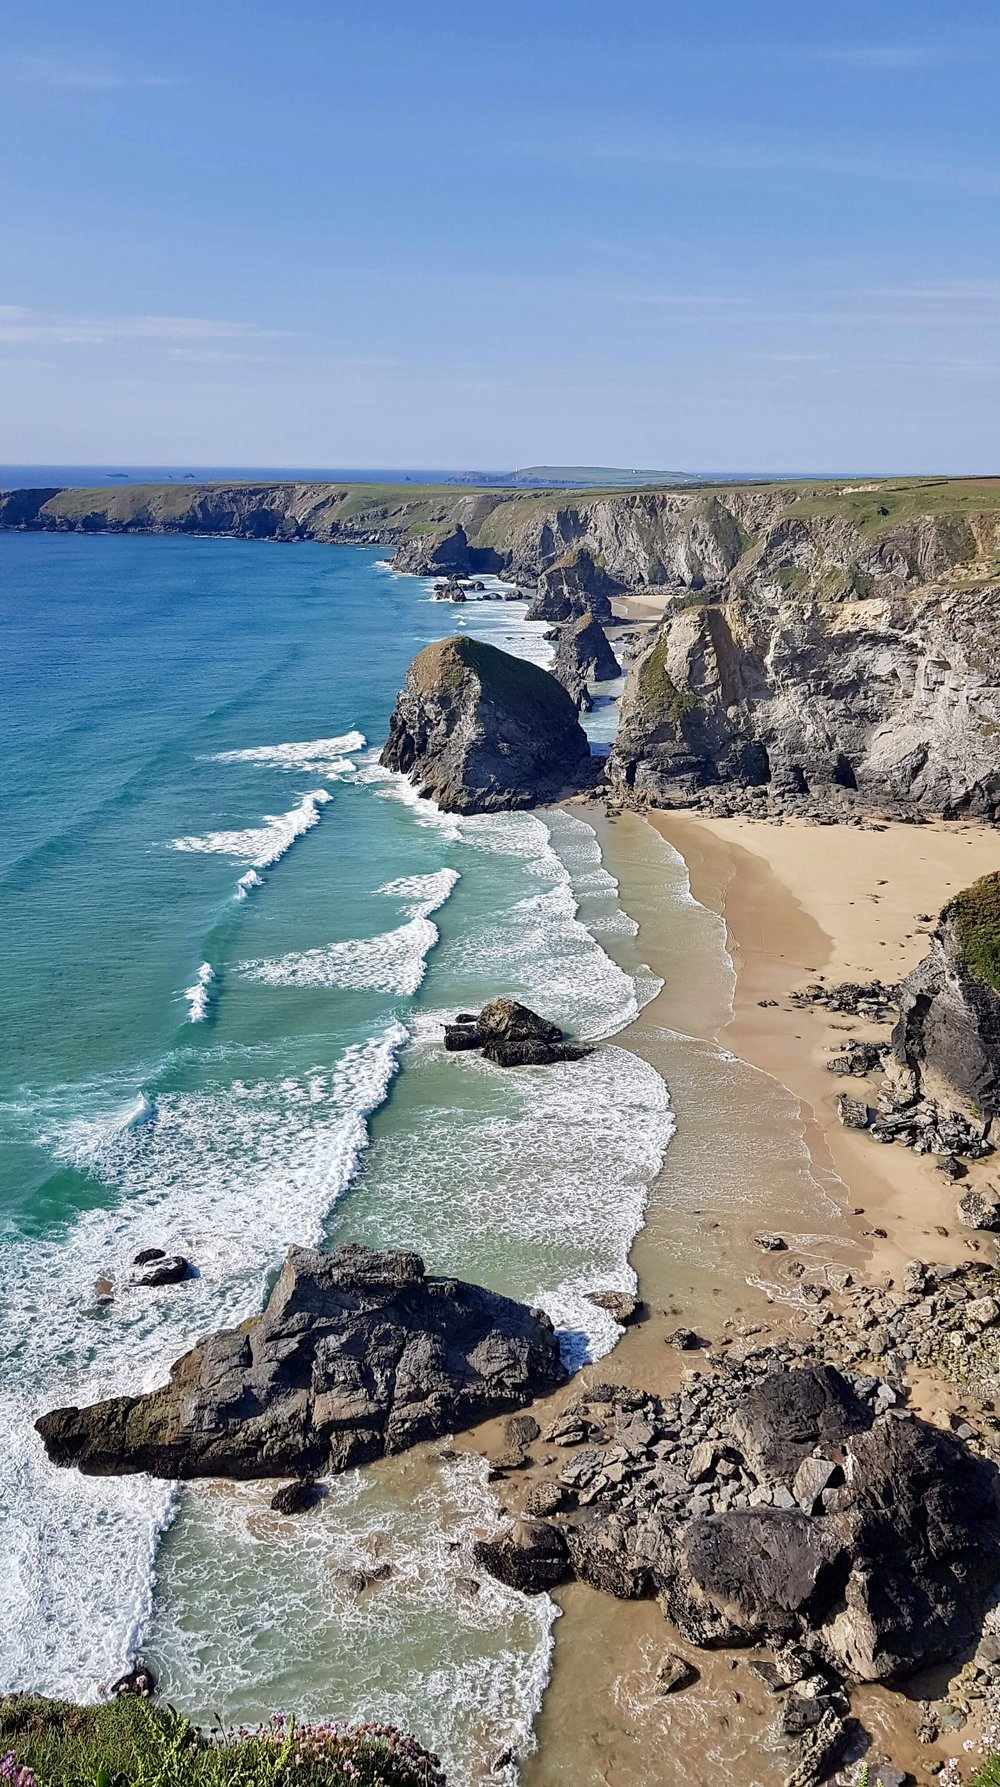 Bedruthan Steps (image courtesy of Sam Little)